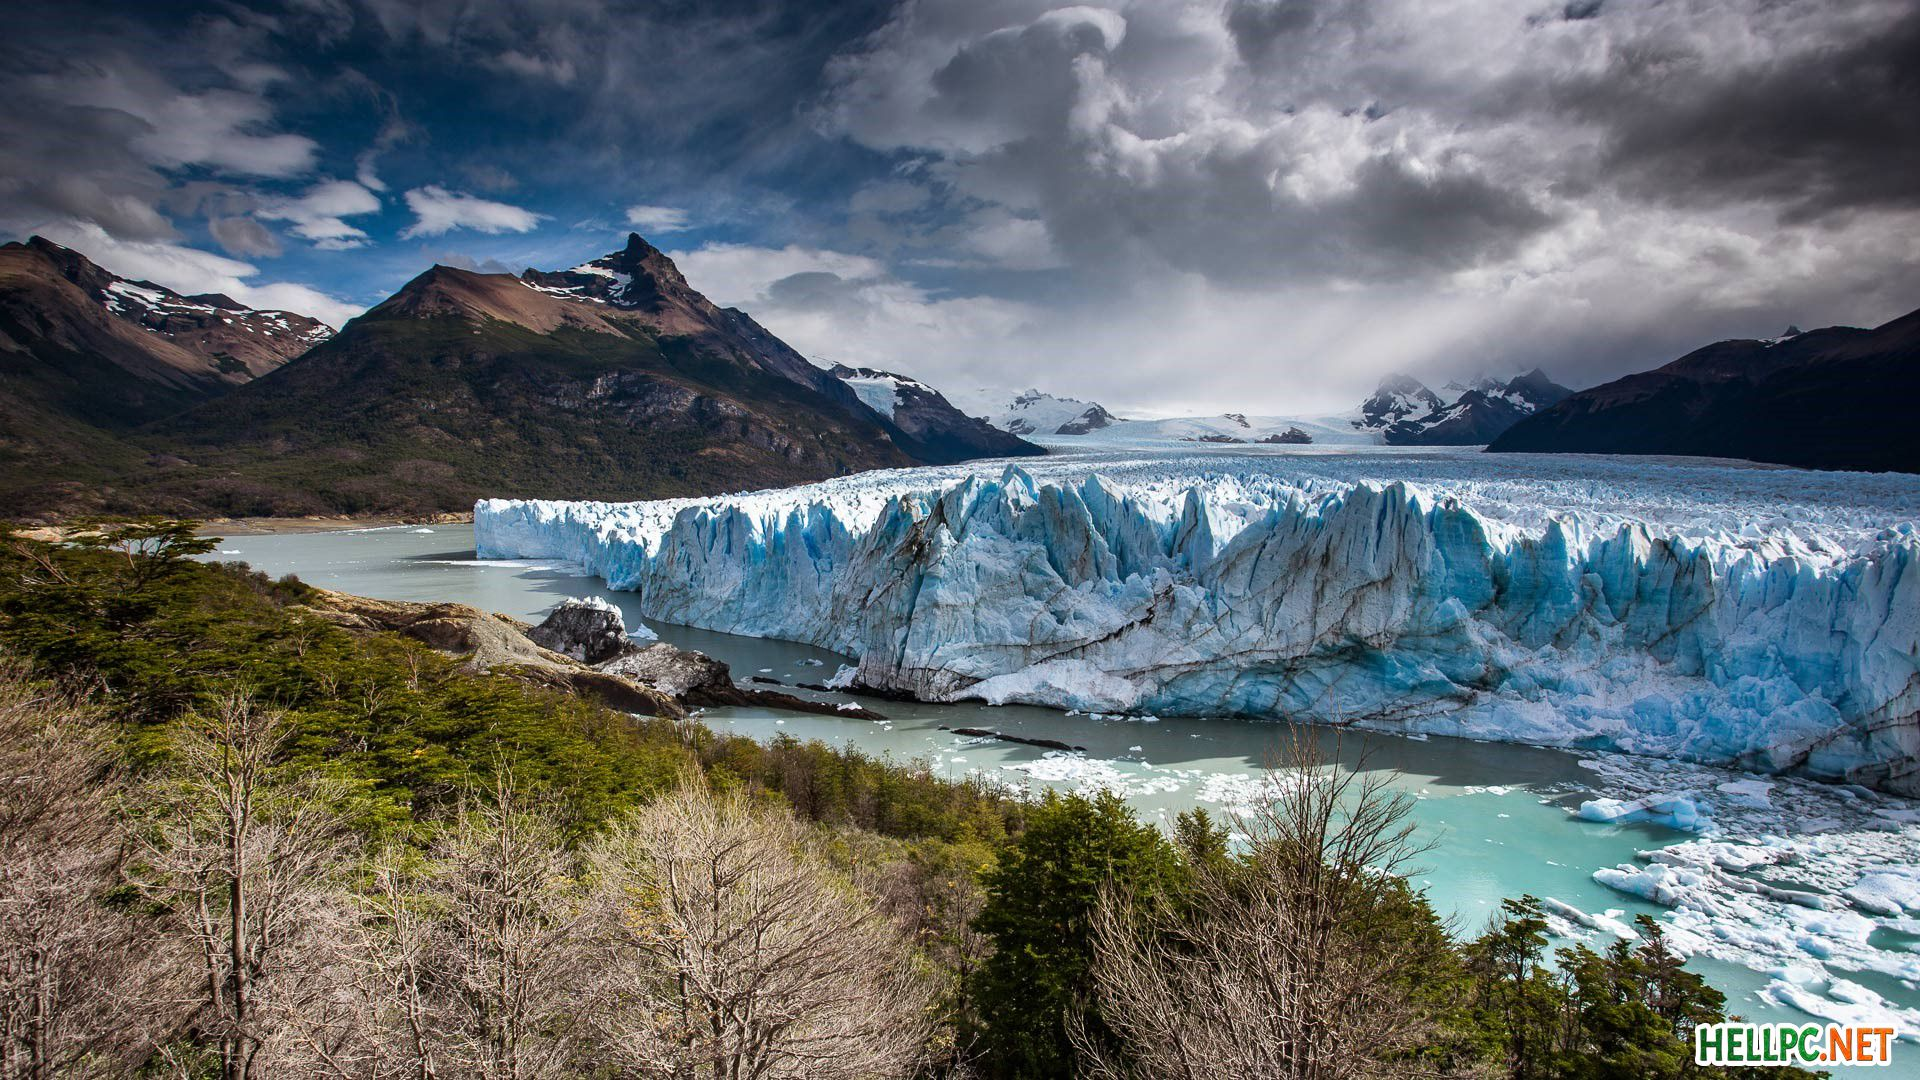 Download Best Windows Spotlight Lockscreen Wallpapers For Pc Hellpc Net Los Glaciares National Park Amazing Places On Earth Mysterious Places